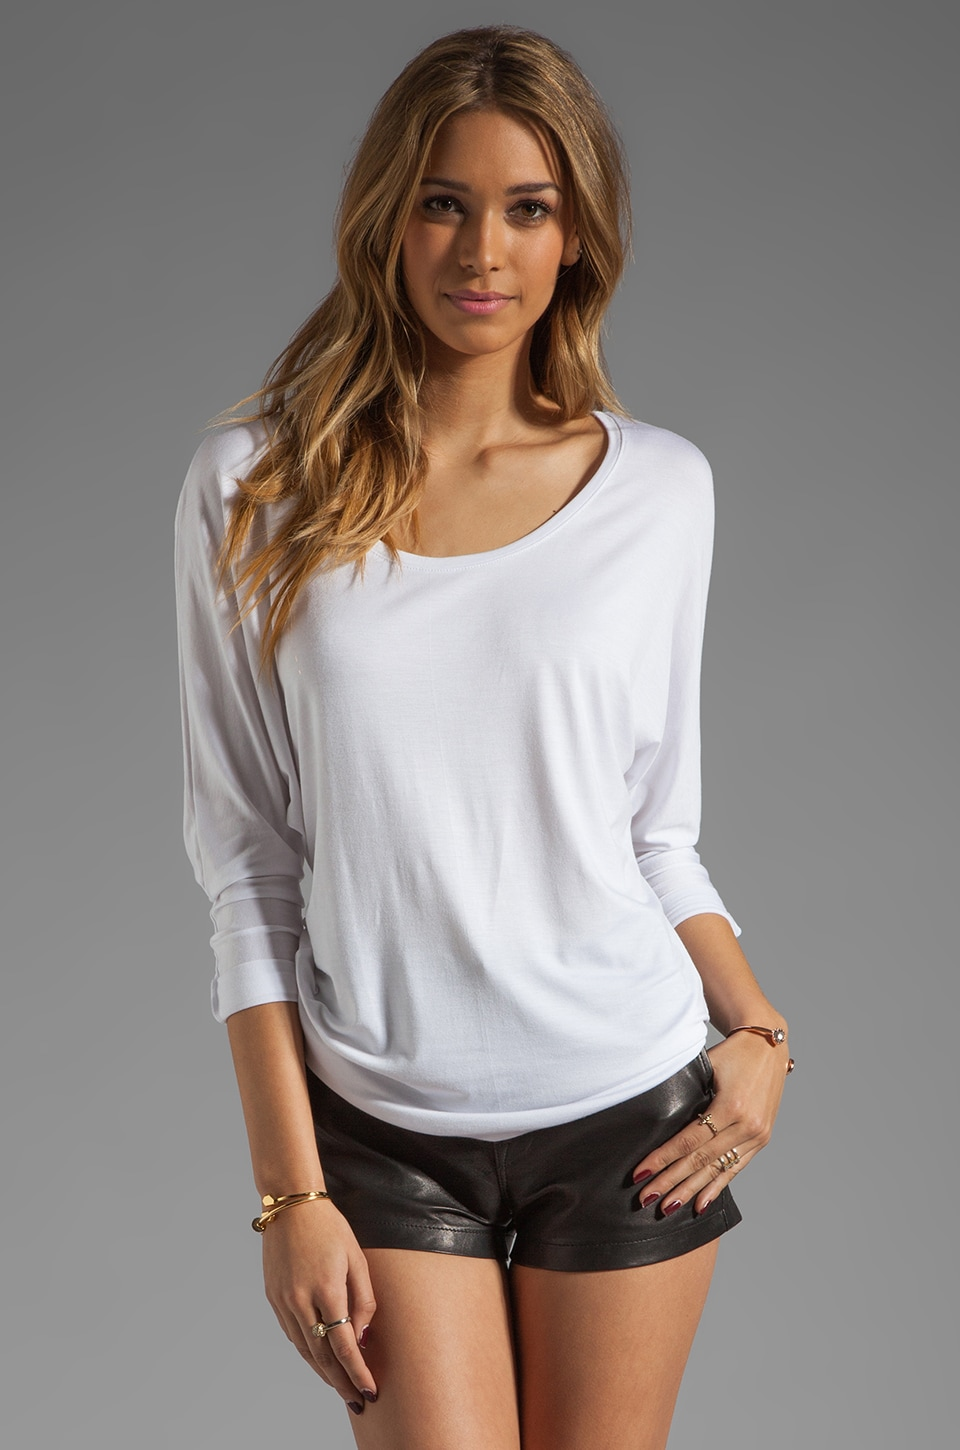 Feel the Piece Icon Long Sleeve Dolman Top in White